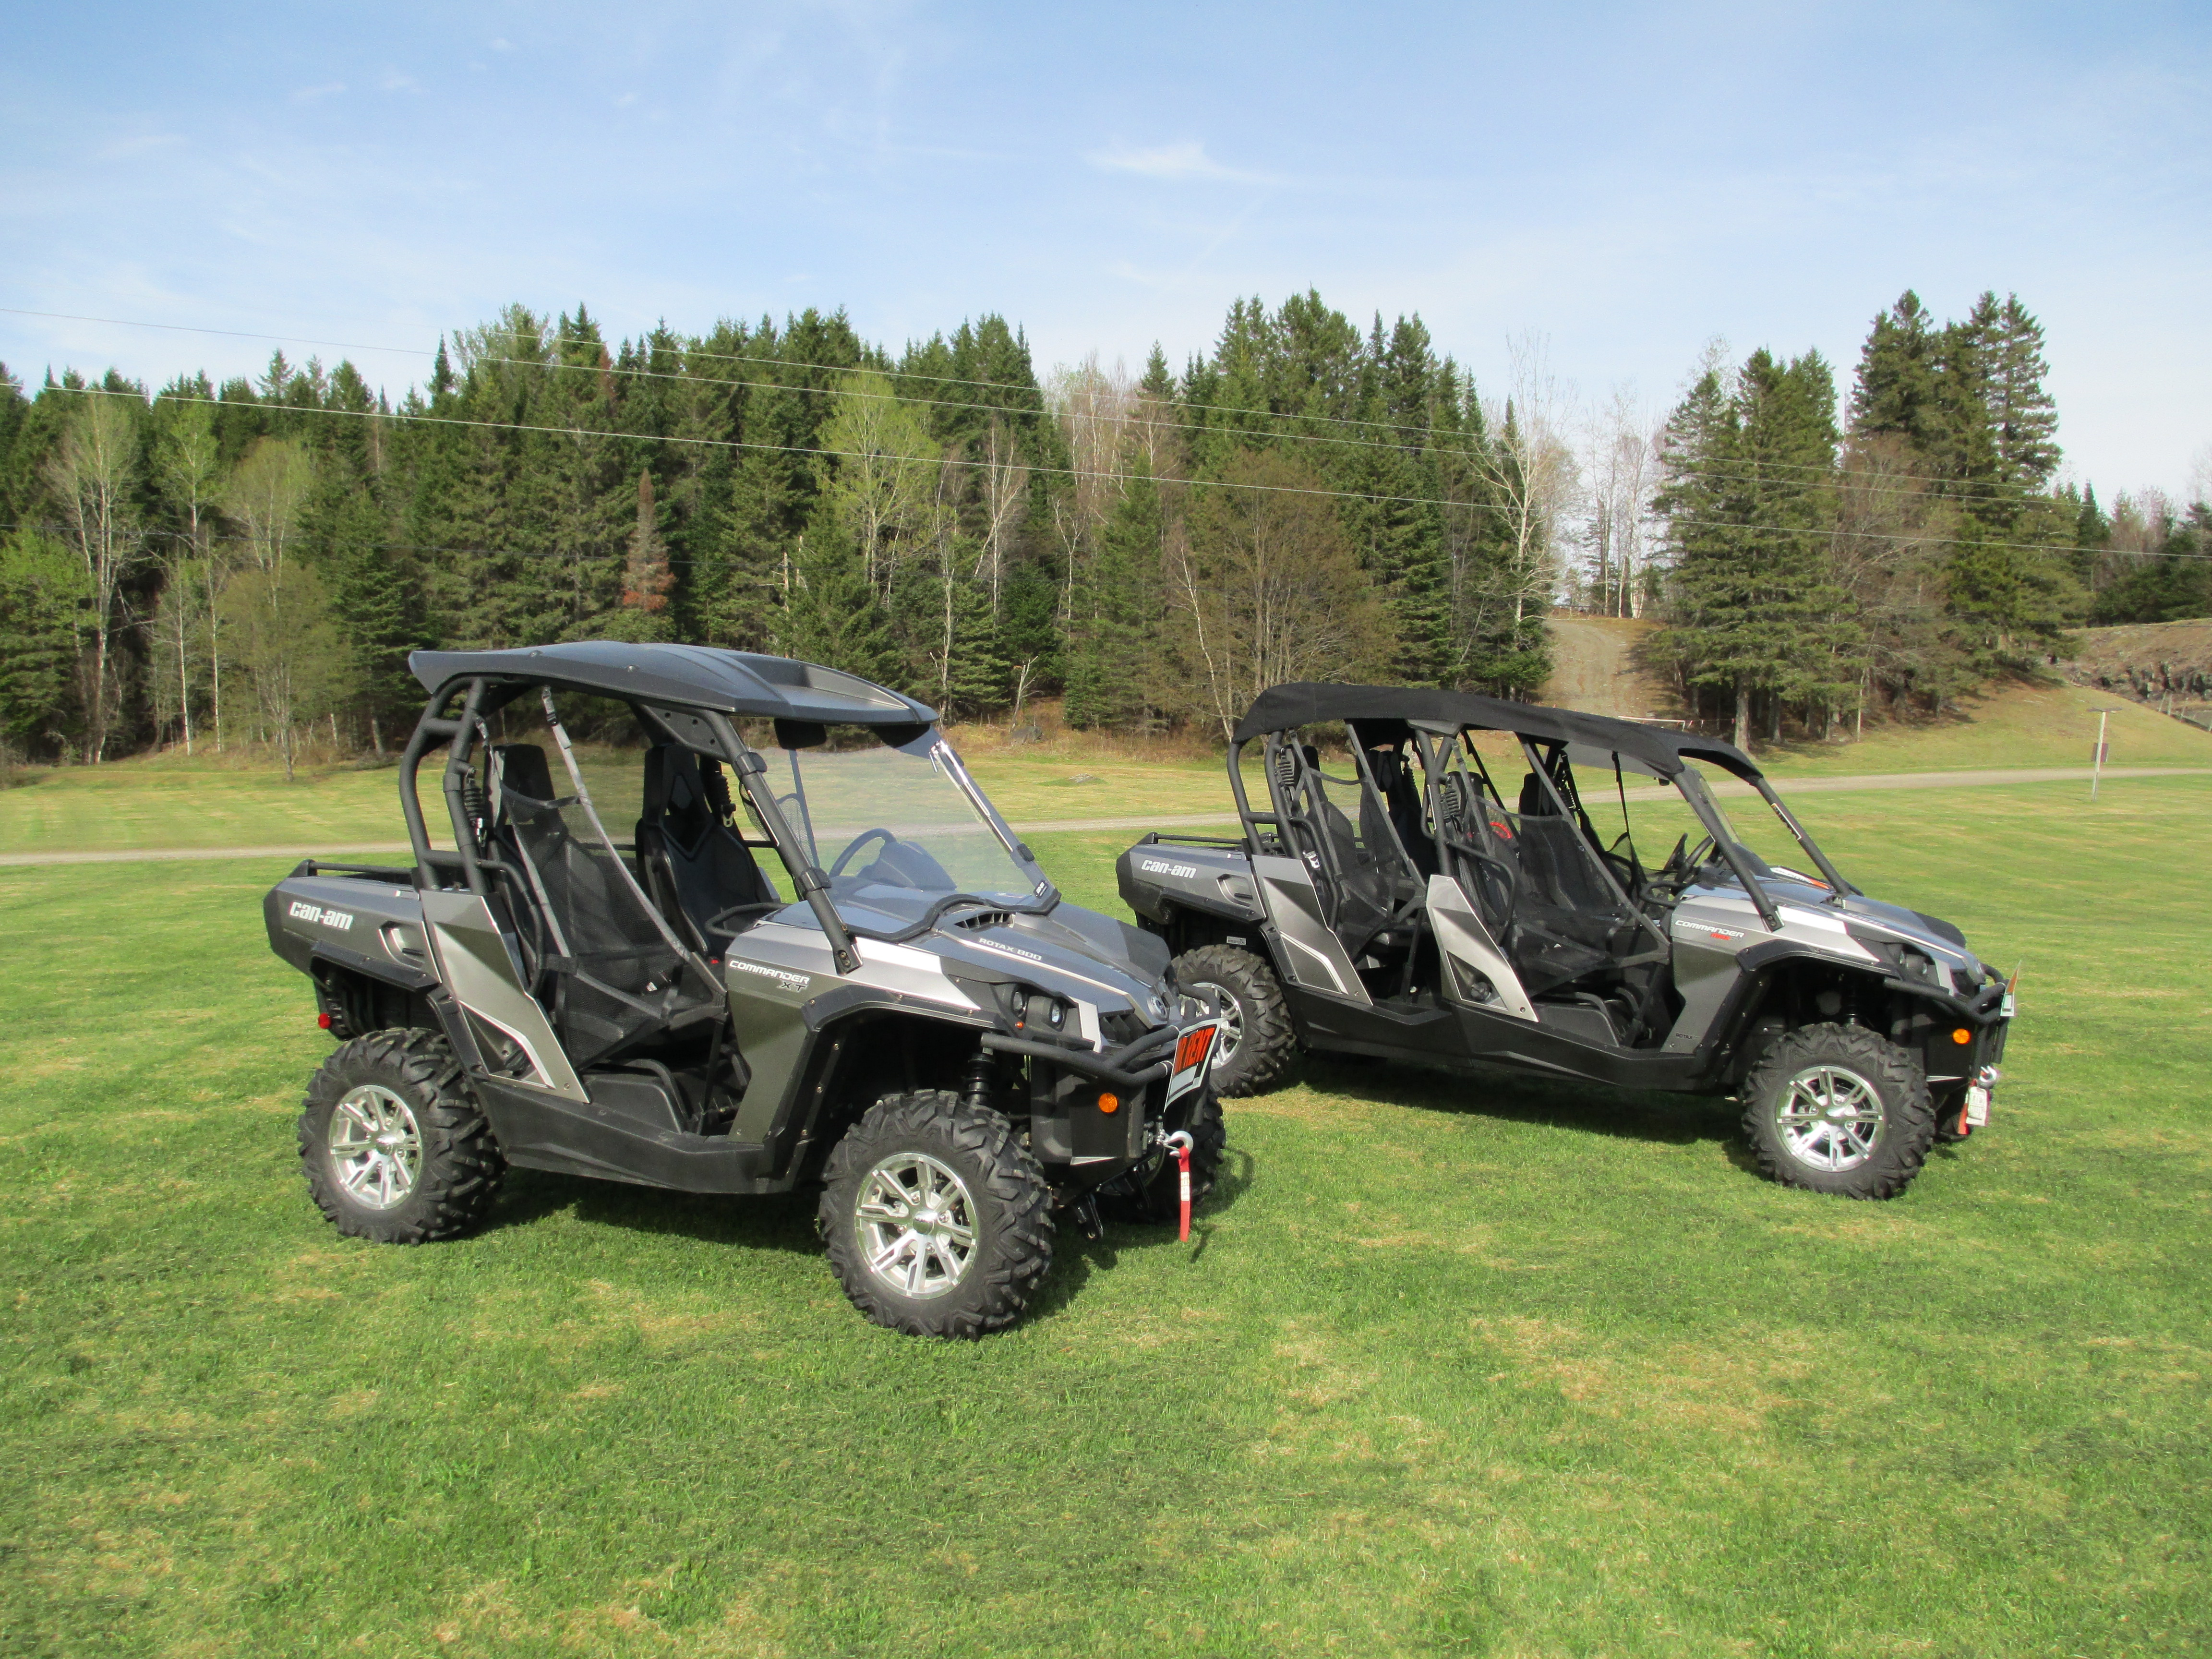 Commander XT 800 ATV Rental